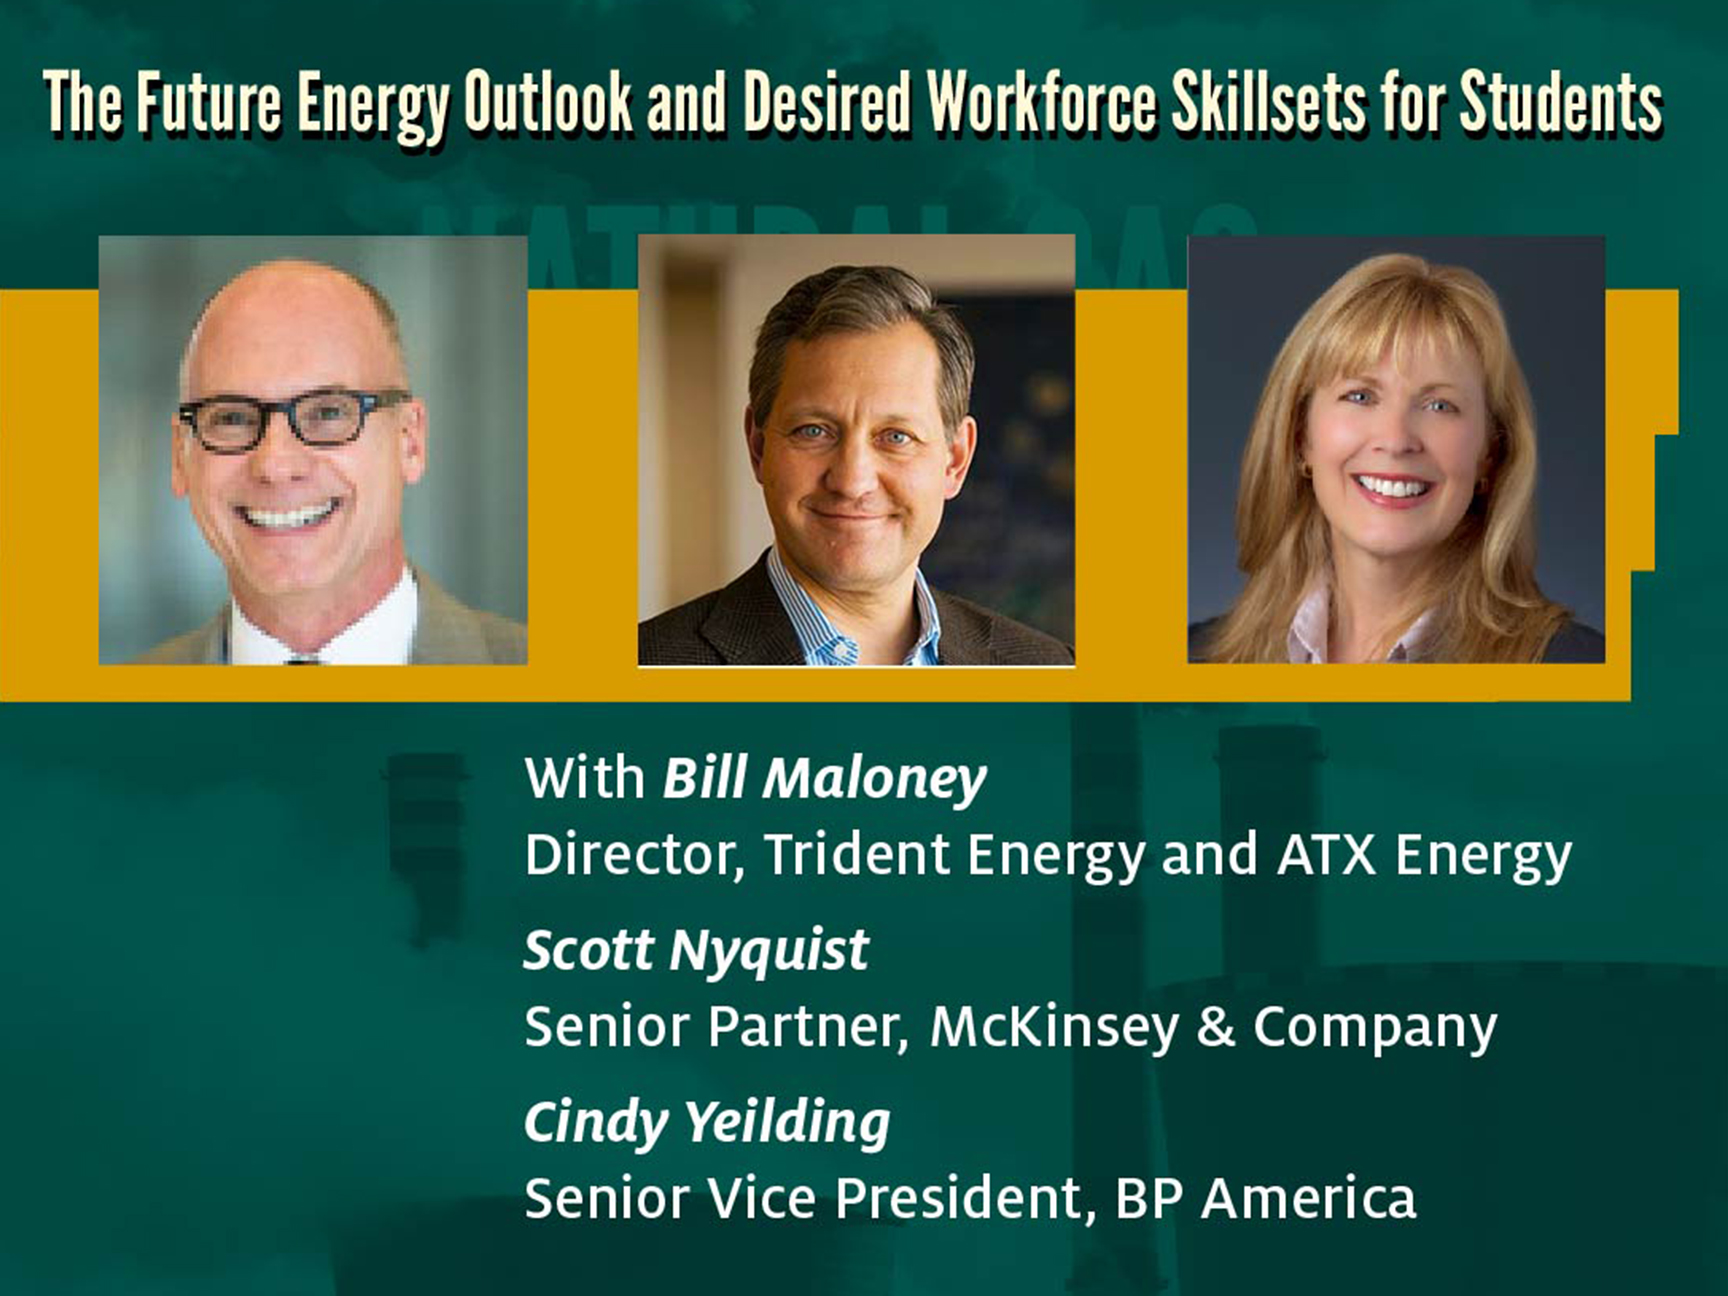 The Future Energy Outlook and Desired Workforce Skillsets for Students Image